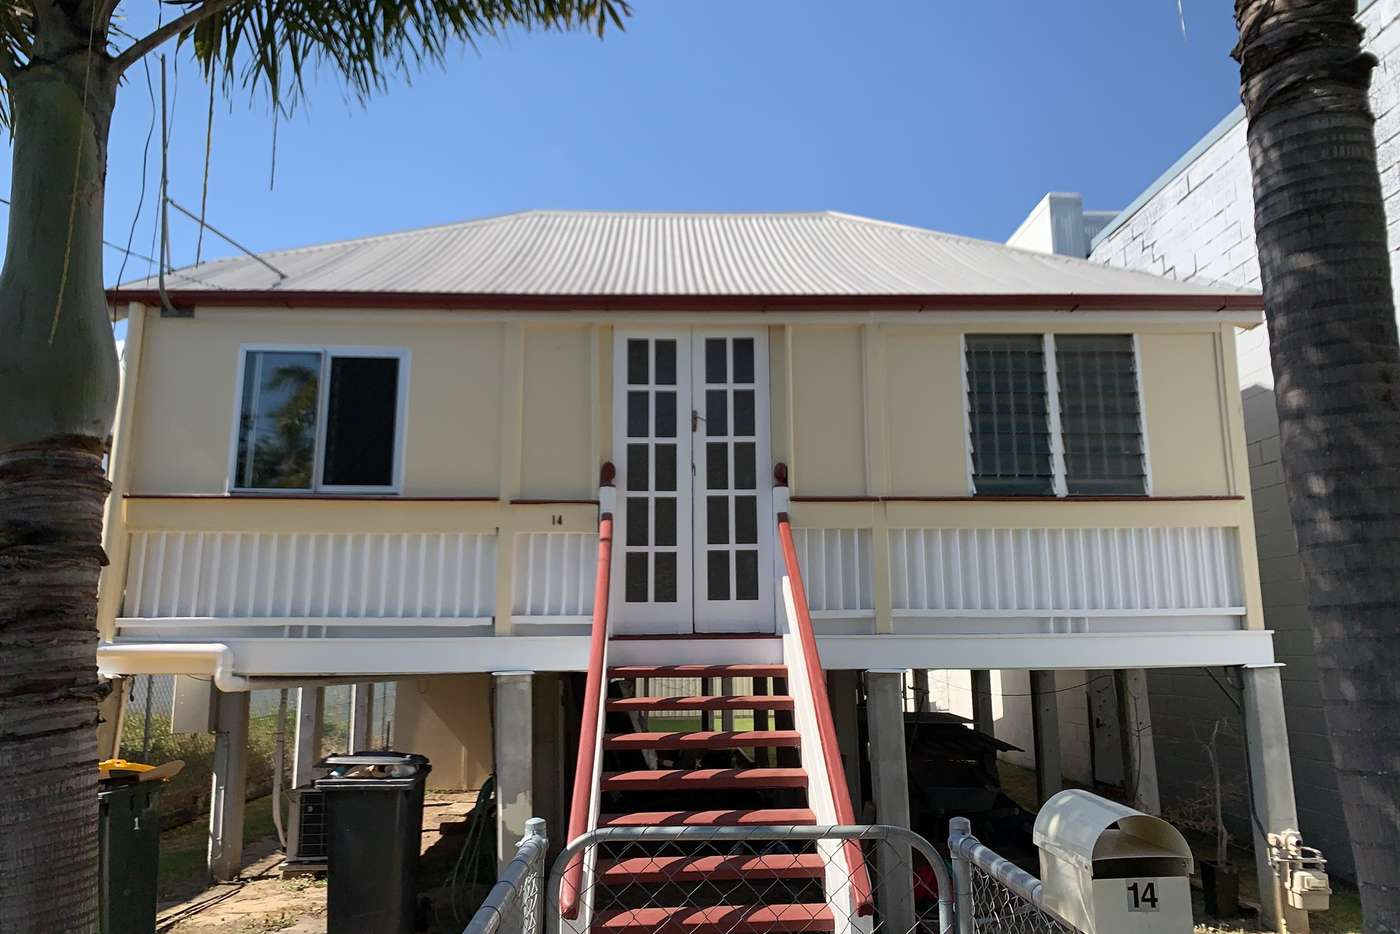 Main view of Homely house listing, 14 Annie Street, Woolloongabba QLD 4102